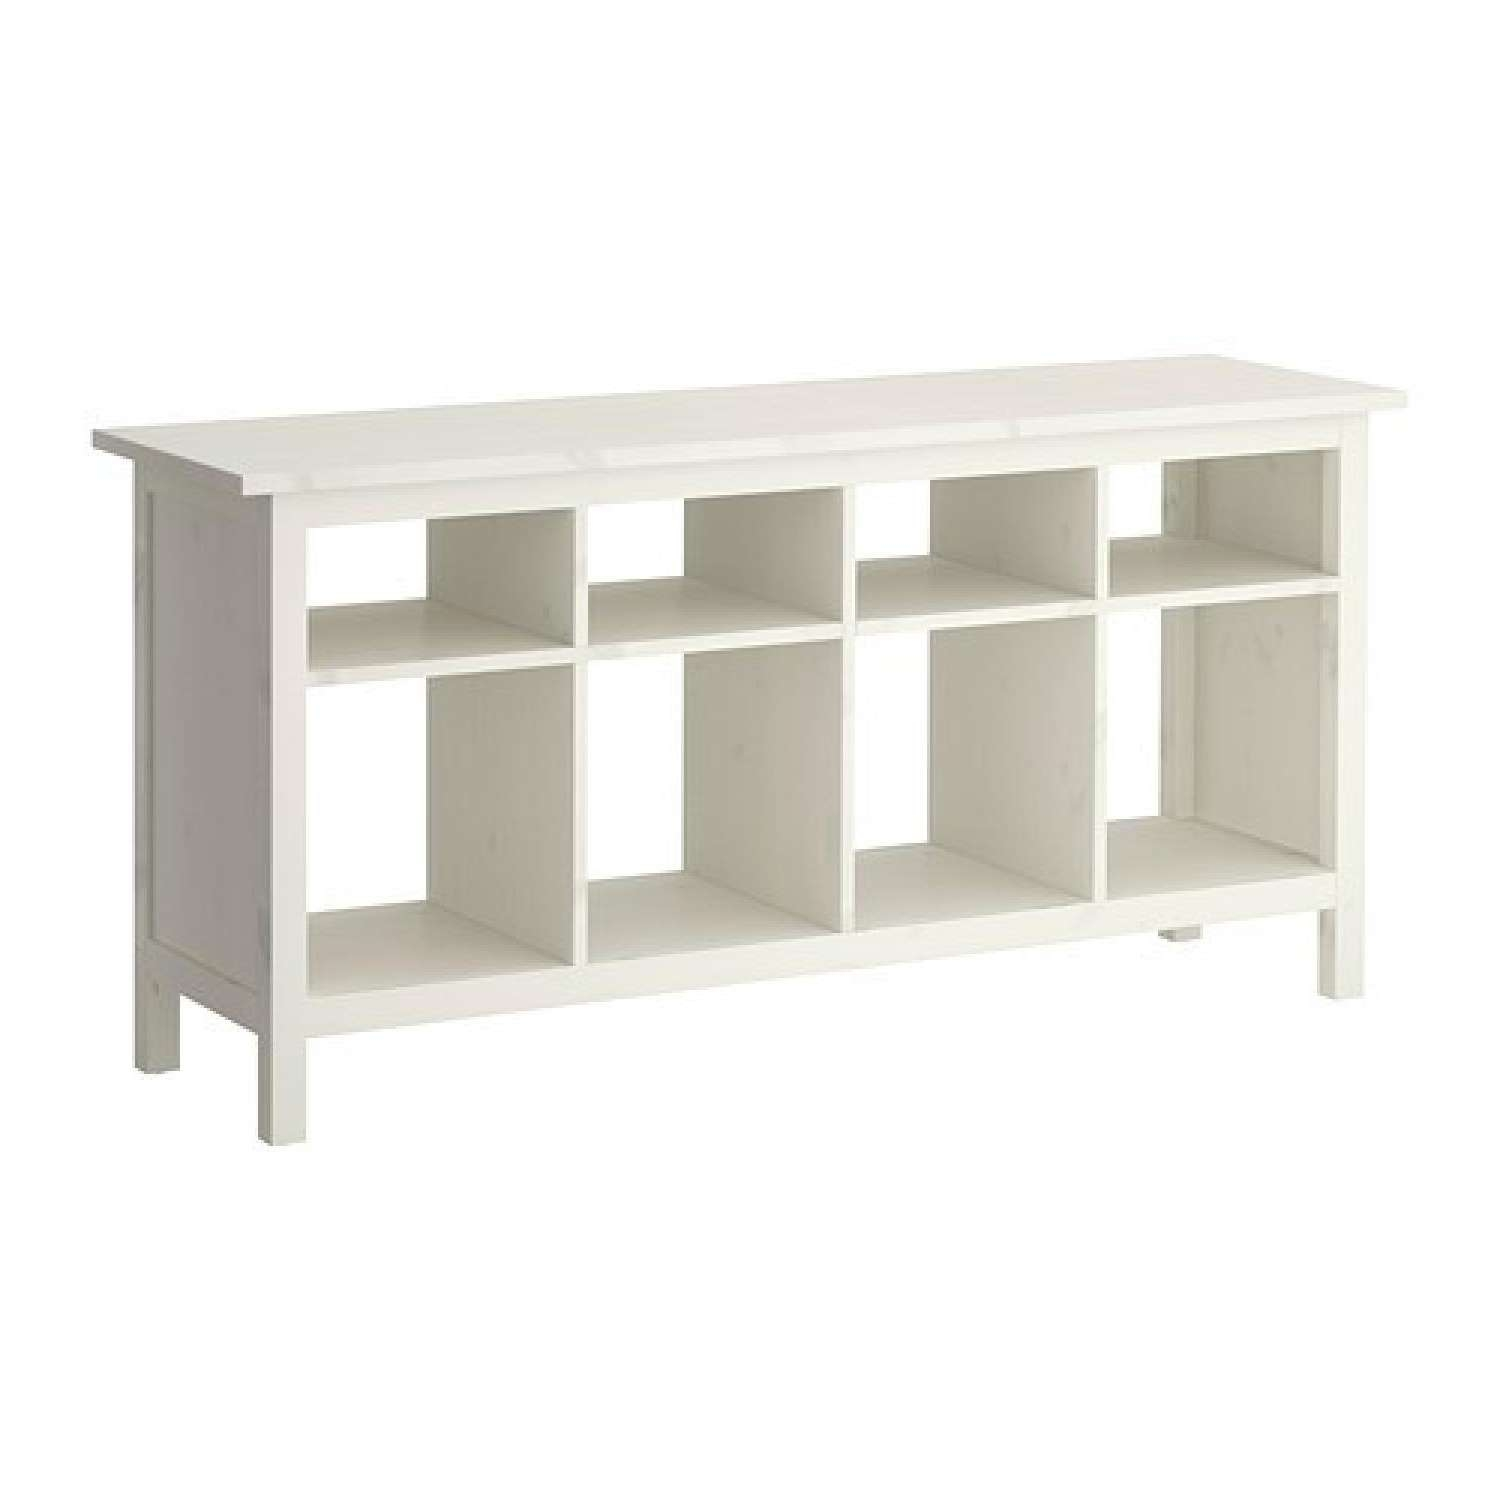 Ikea Hemnes Console Table – Aptdeco For Ikea Hemnes Sideboards (View 8 of 20)